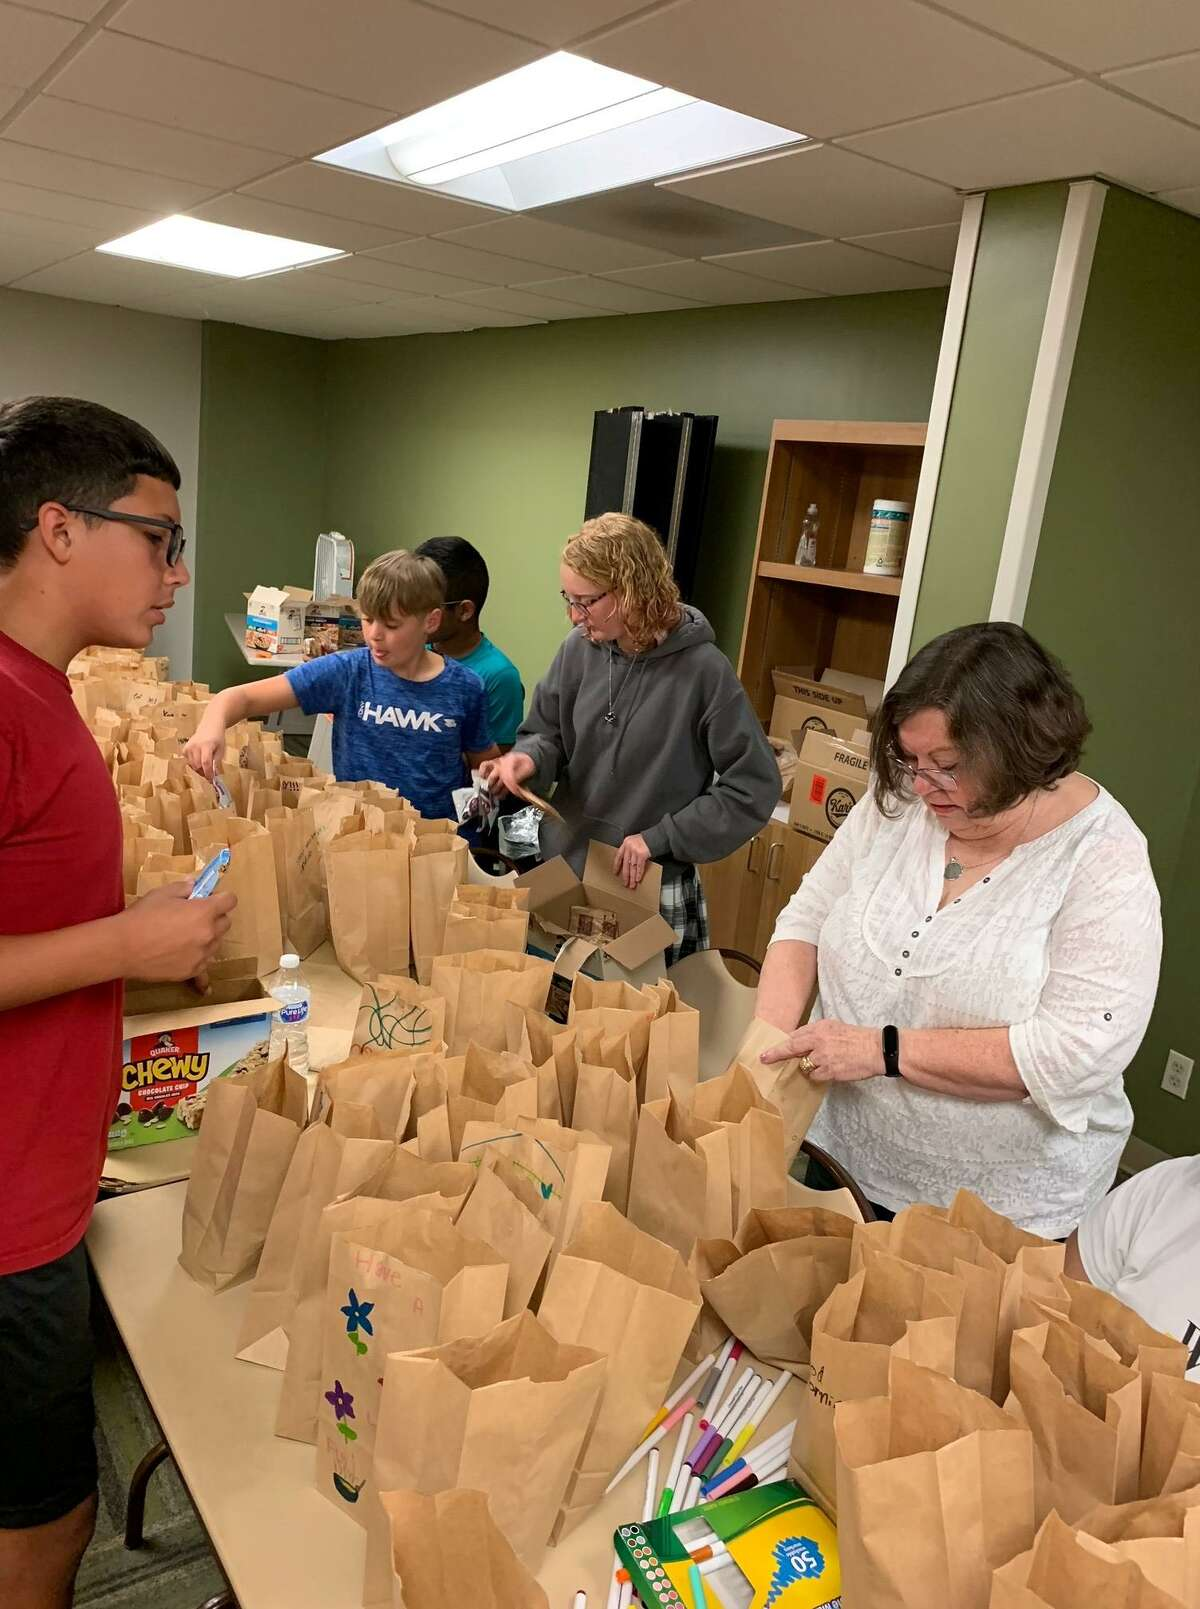 Service-loving teenagers in the Conroe recreation department's teen program decorated 200 bags with colorful drawing and positive phrases on Thursday and filled them with breakfast items for Montgomery County Meals on Wheels.